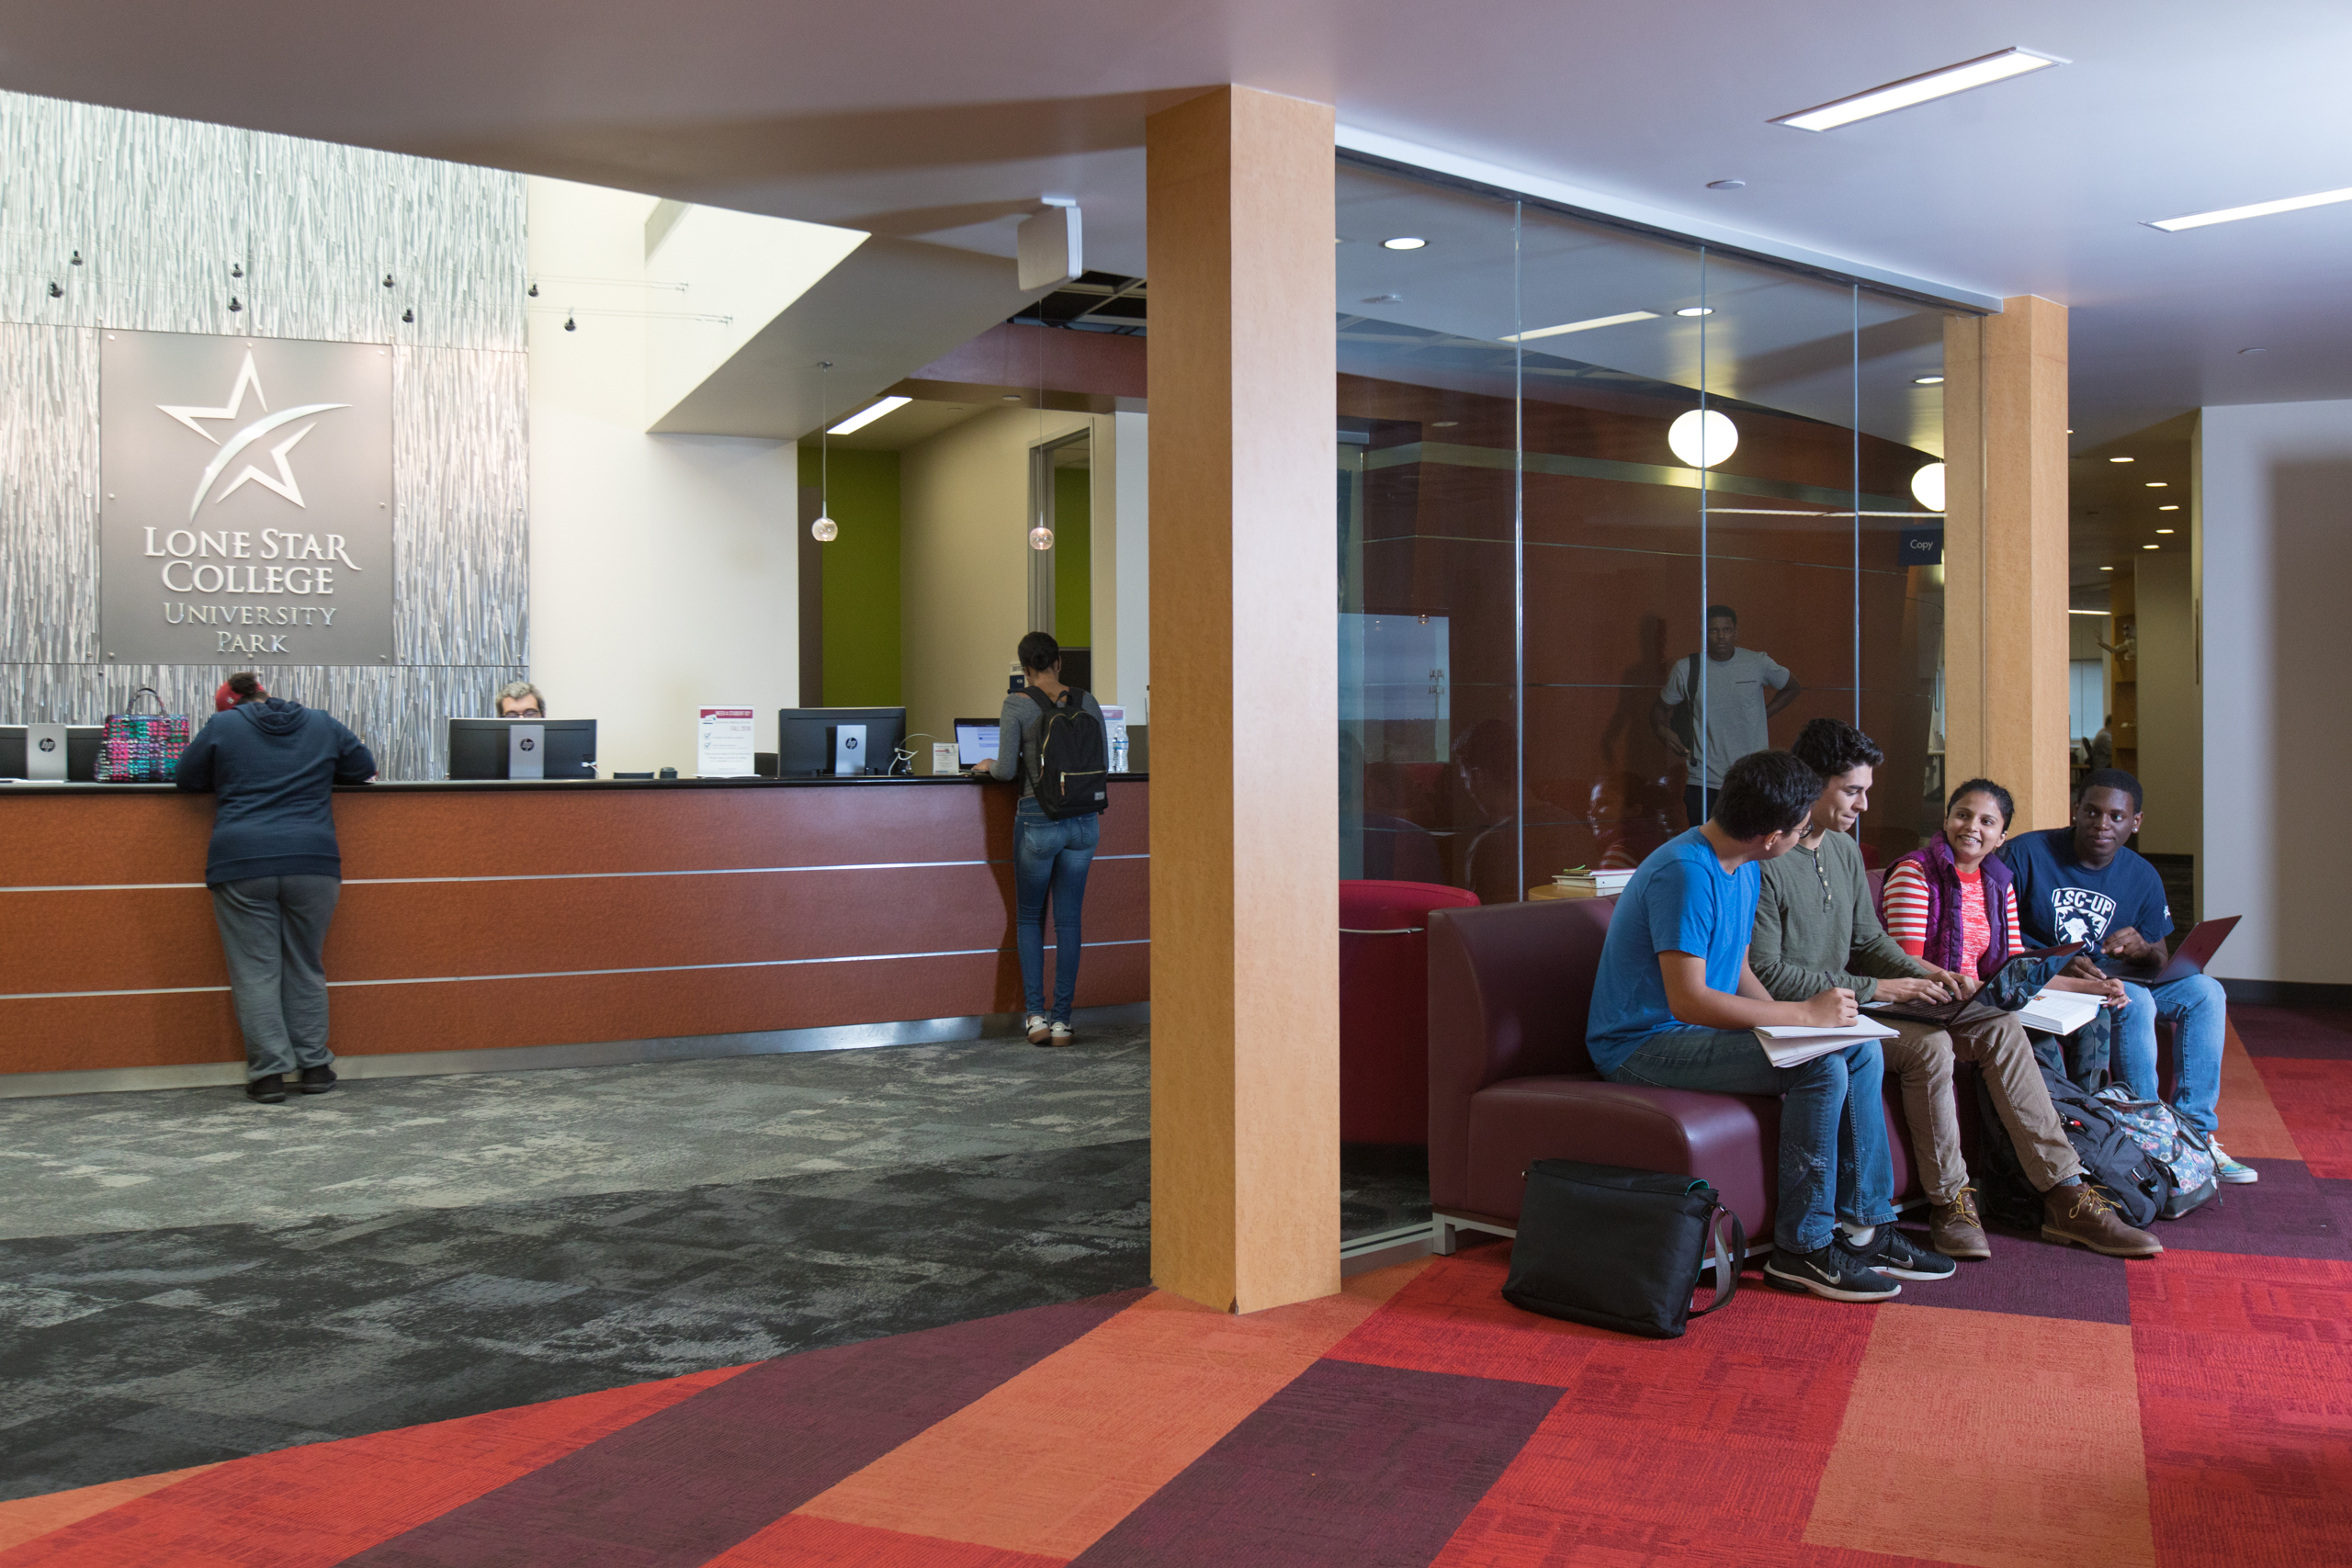 Staged photo of SLRC entry and front desk with students collaborating on the couch and a couple other students getting help at the front desk.